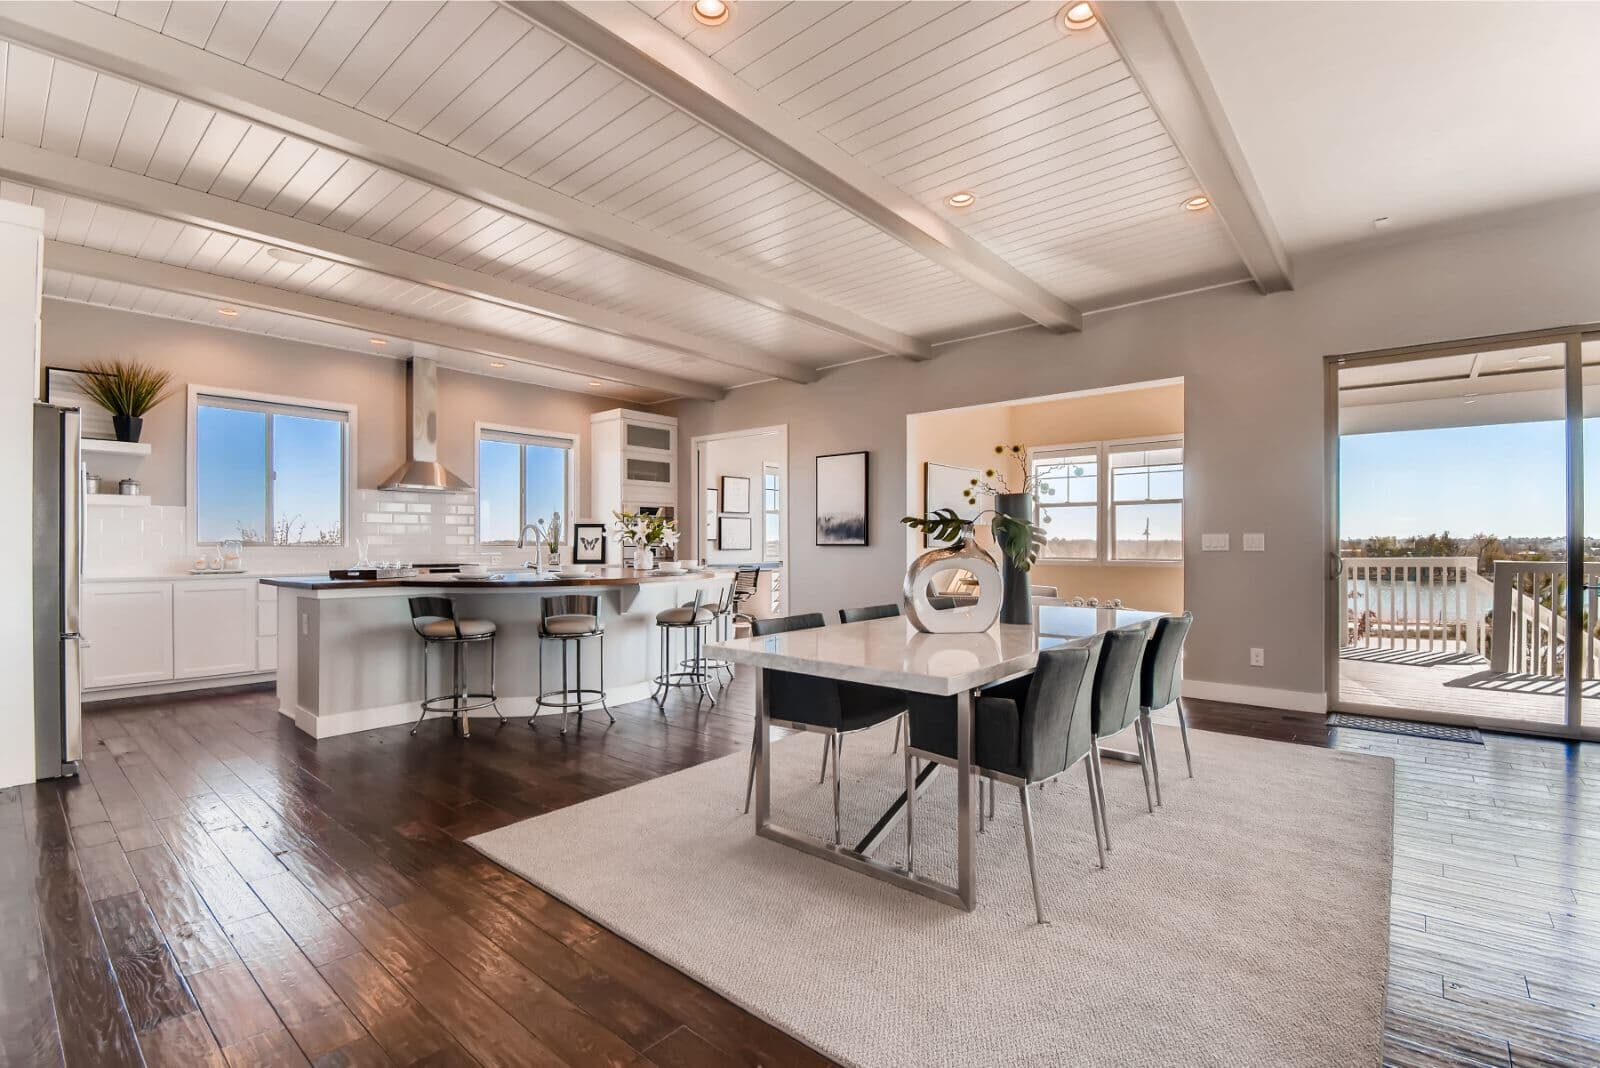 Harvest-Three-Dining-Room-Barefoot-Lakes-Denver-Colorado